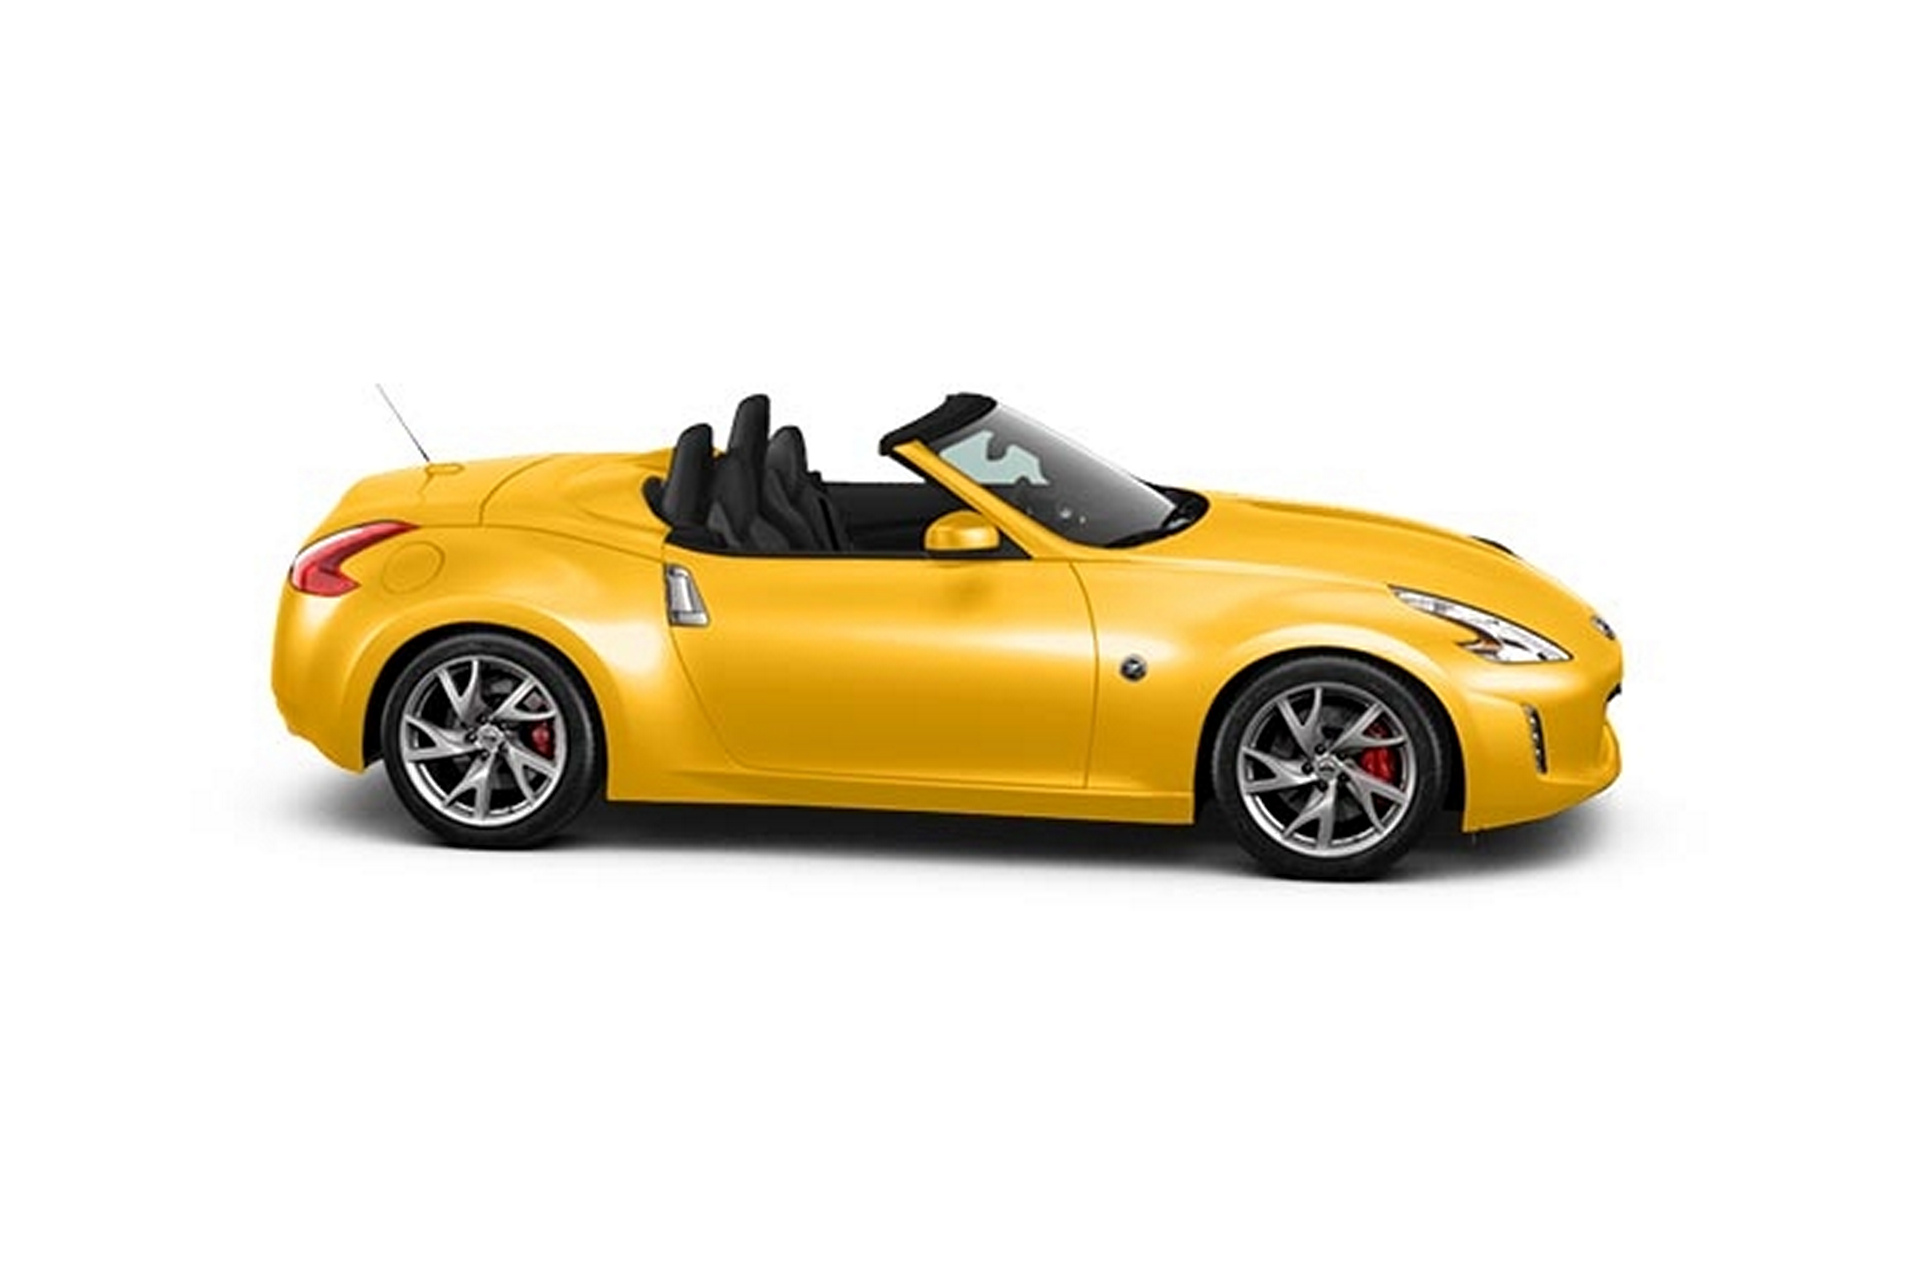 2017 Nissan 370Z Roadster © Nissan Motor Co., Ltd.